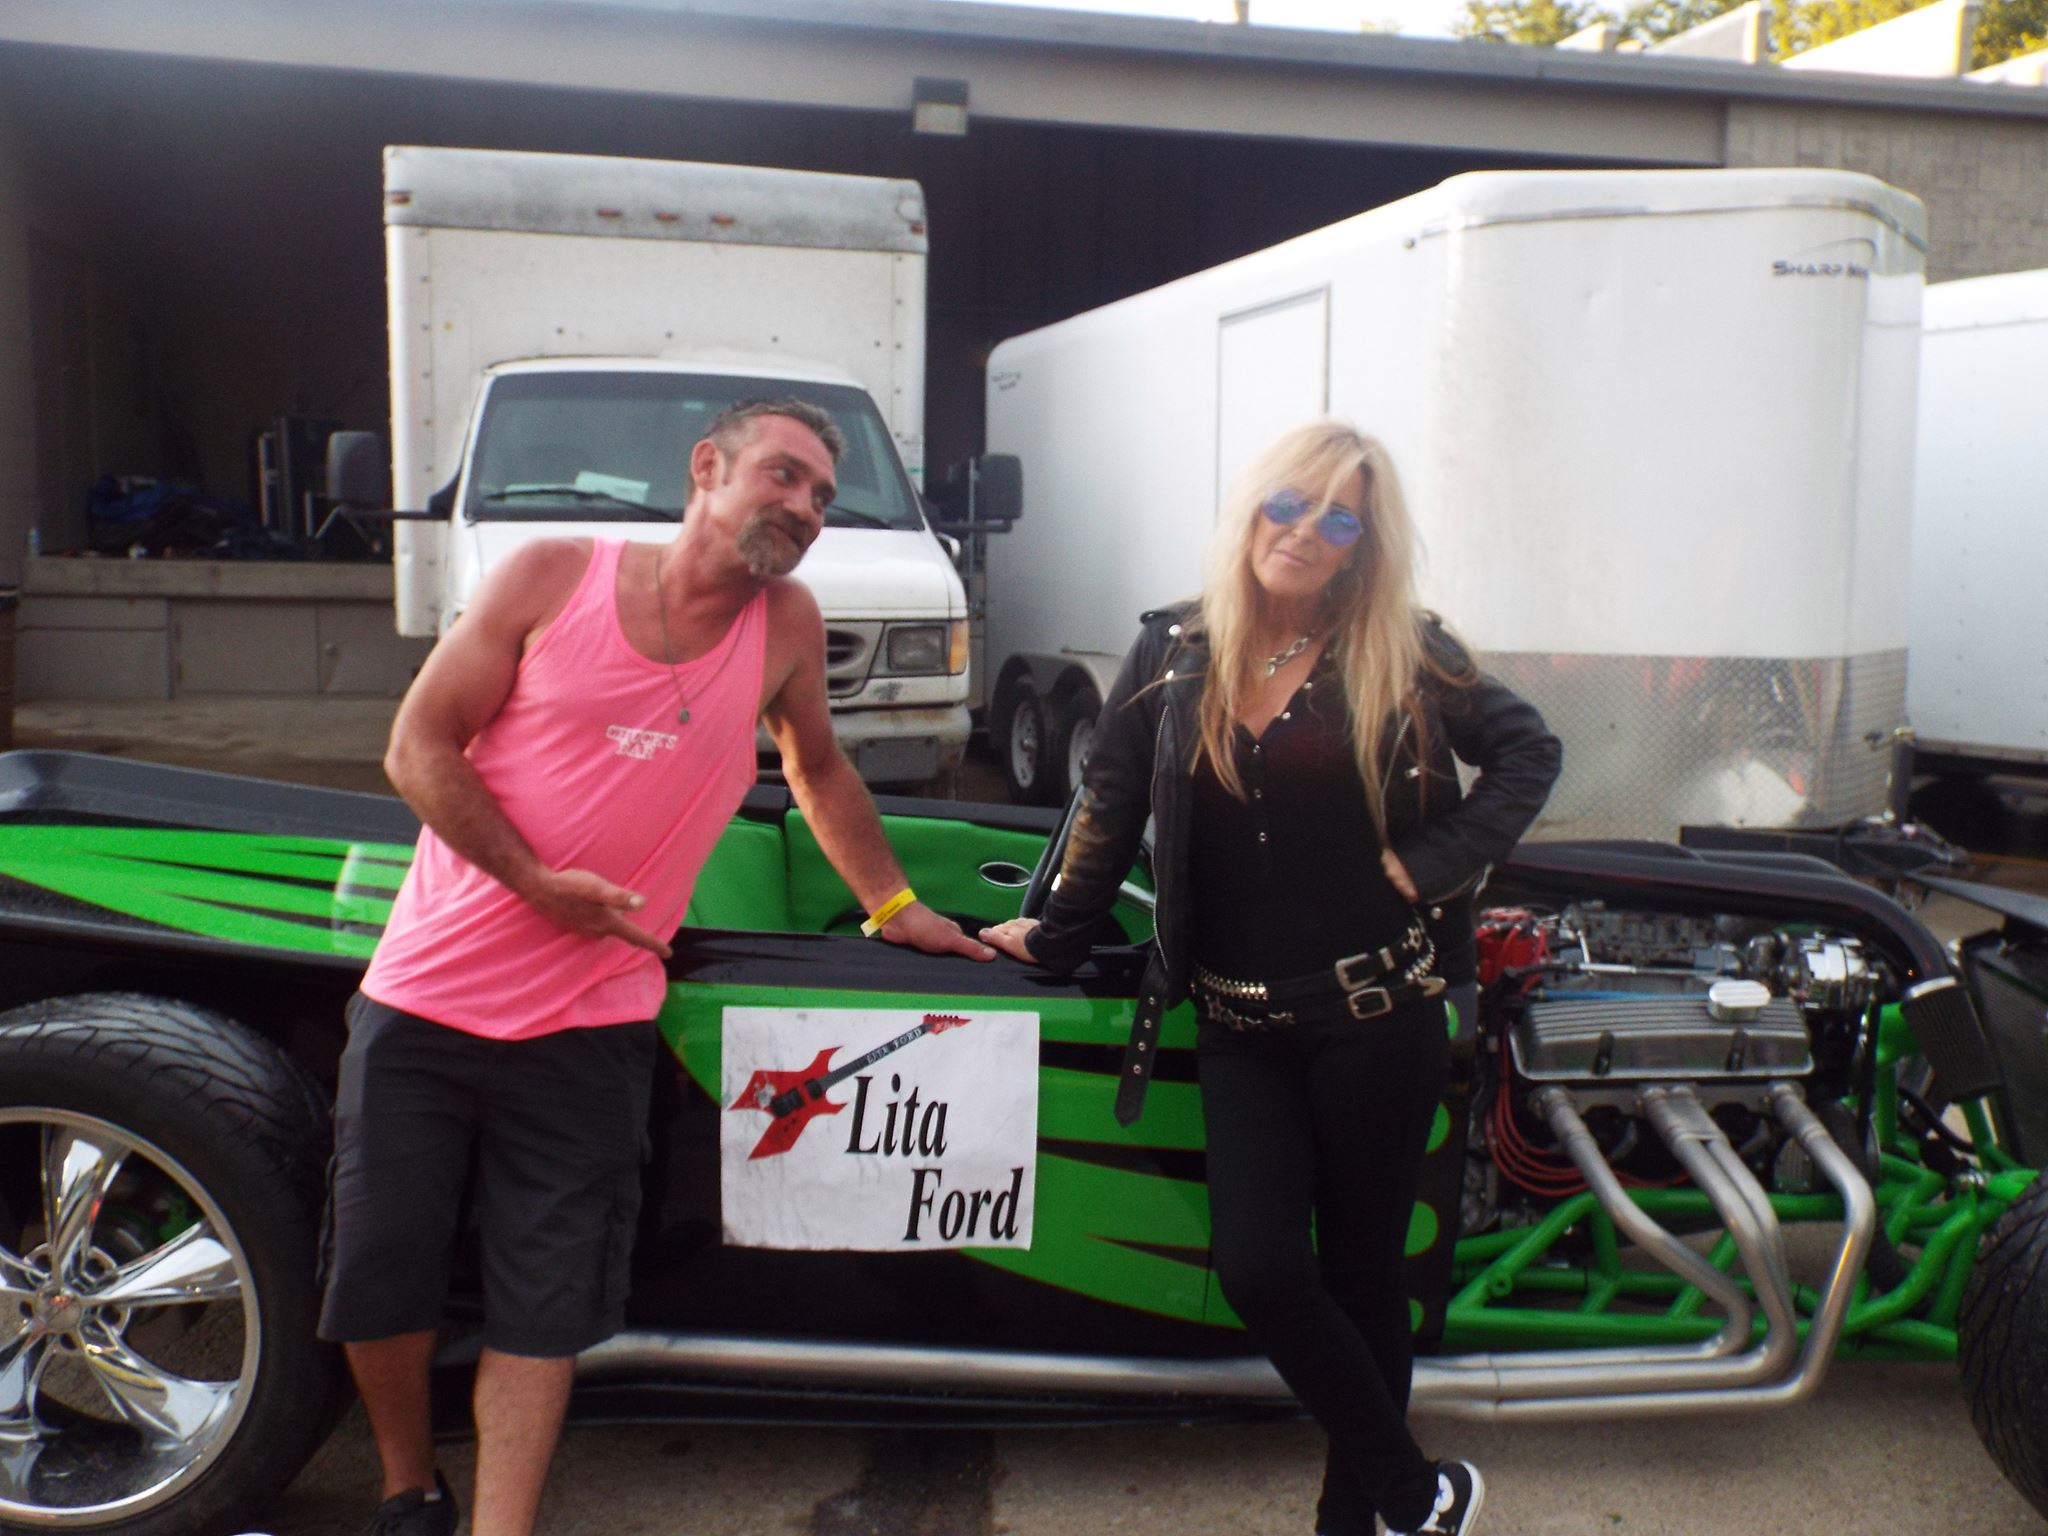 Cool Cars and Rock Stars